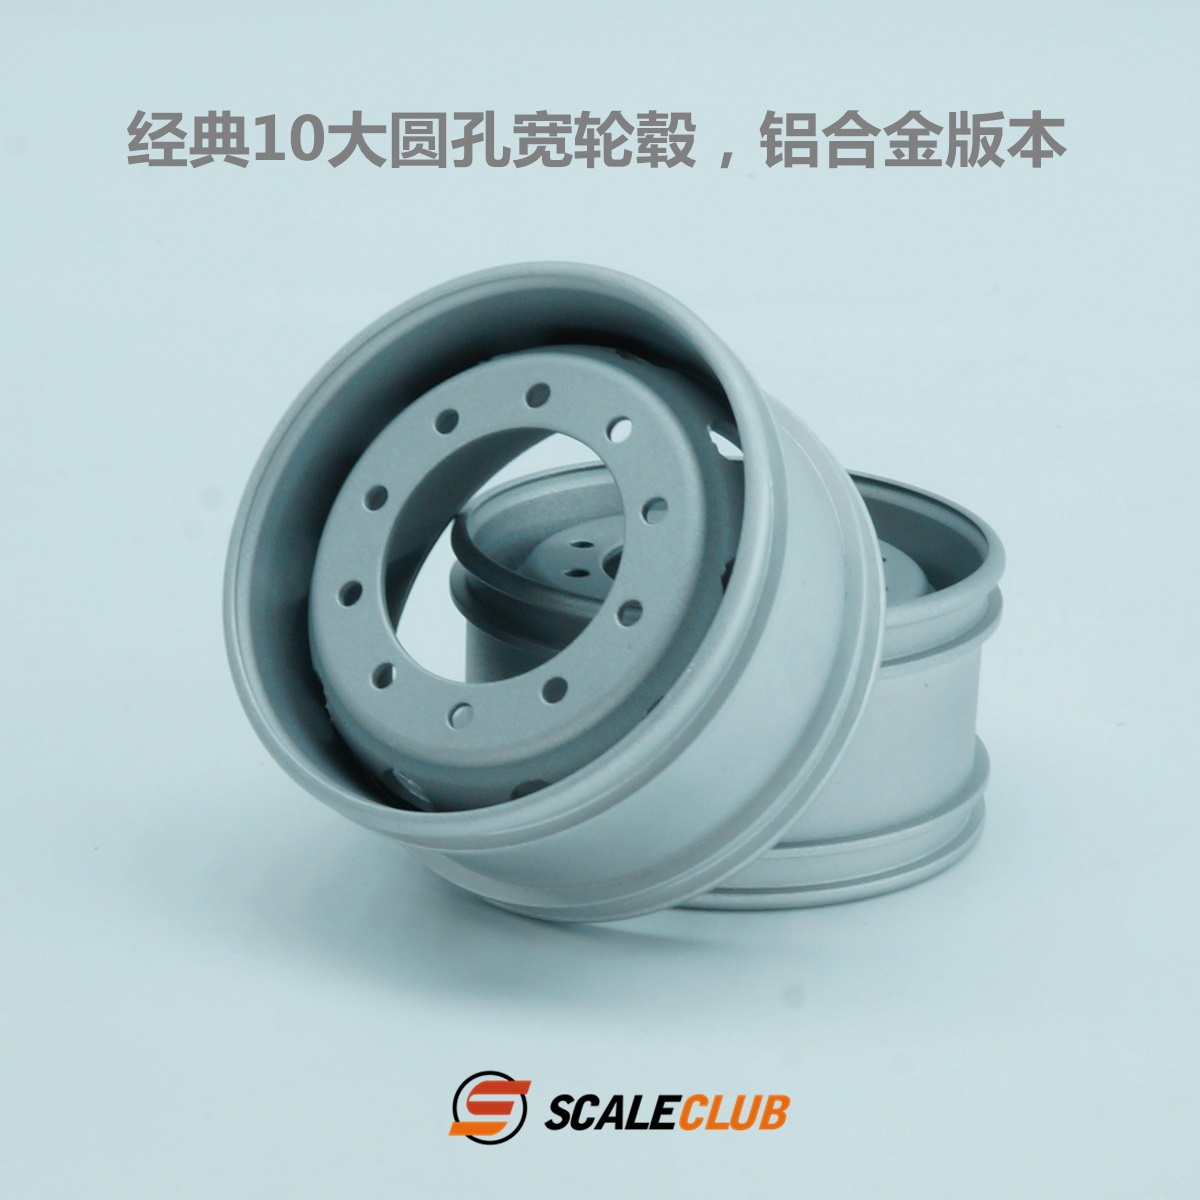 SCALECLUB  1/14 Universal  Aluminum alloy version of classic 10 large round hole wheel hub